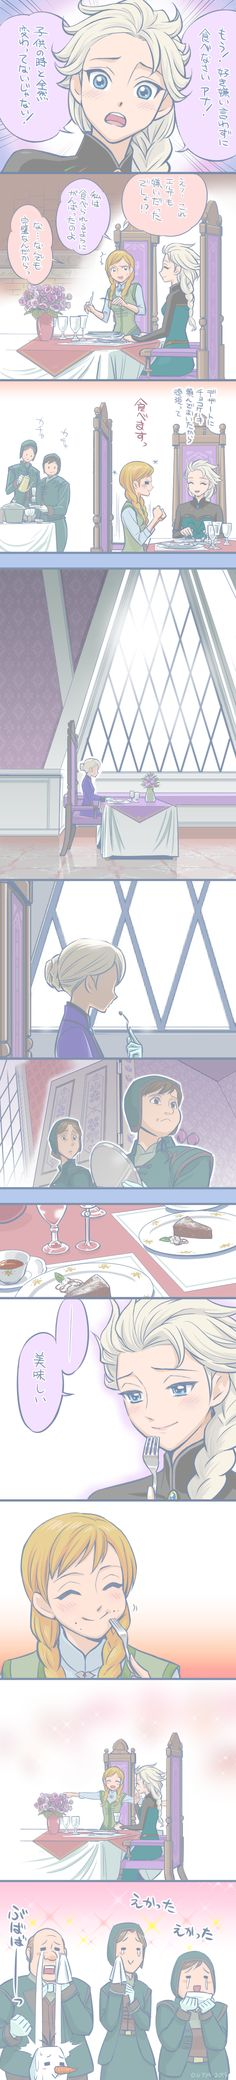 Disney's Frozen | Walt Disney Animation Studios. I don't know what it's saying, but it's so cute!